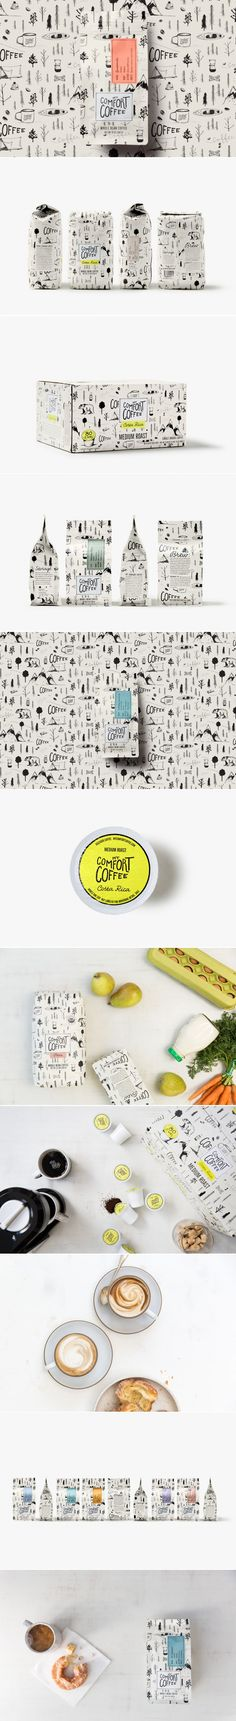 Mt. Comfort Coffee Comes With Adorable Illustrations — The Dieline | Packaging & Branding Design & Innovation News